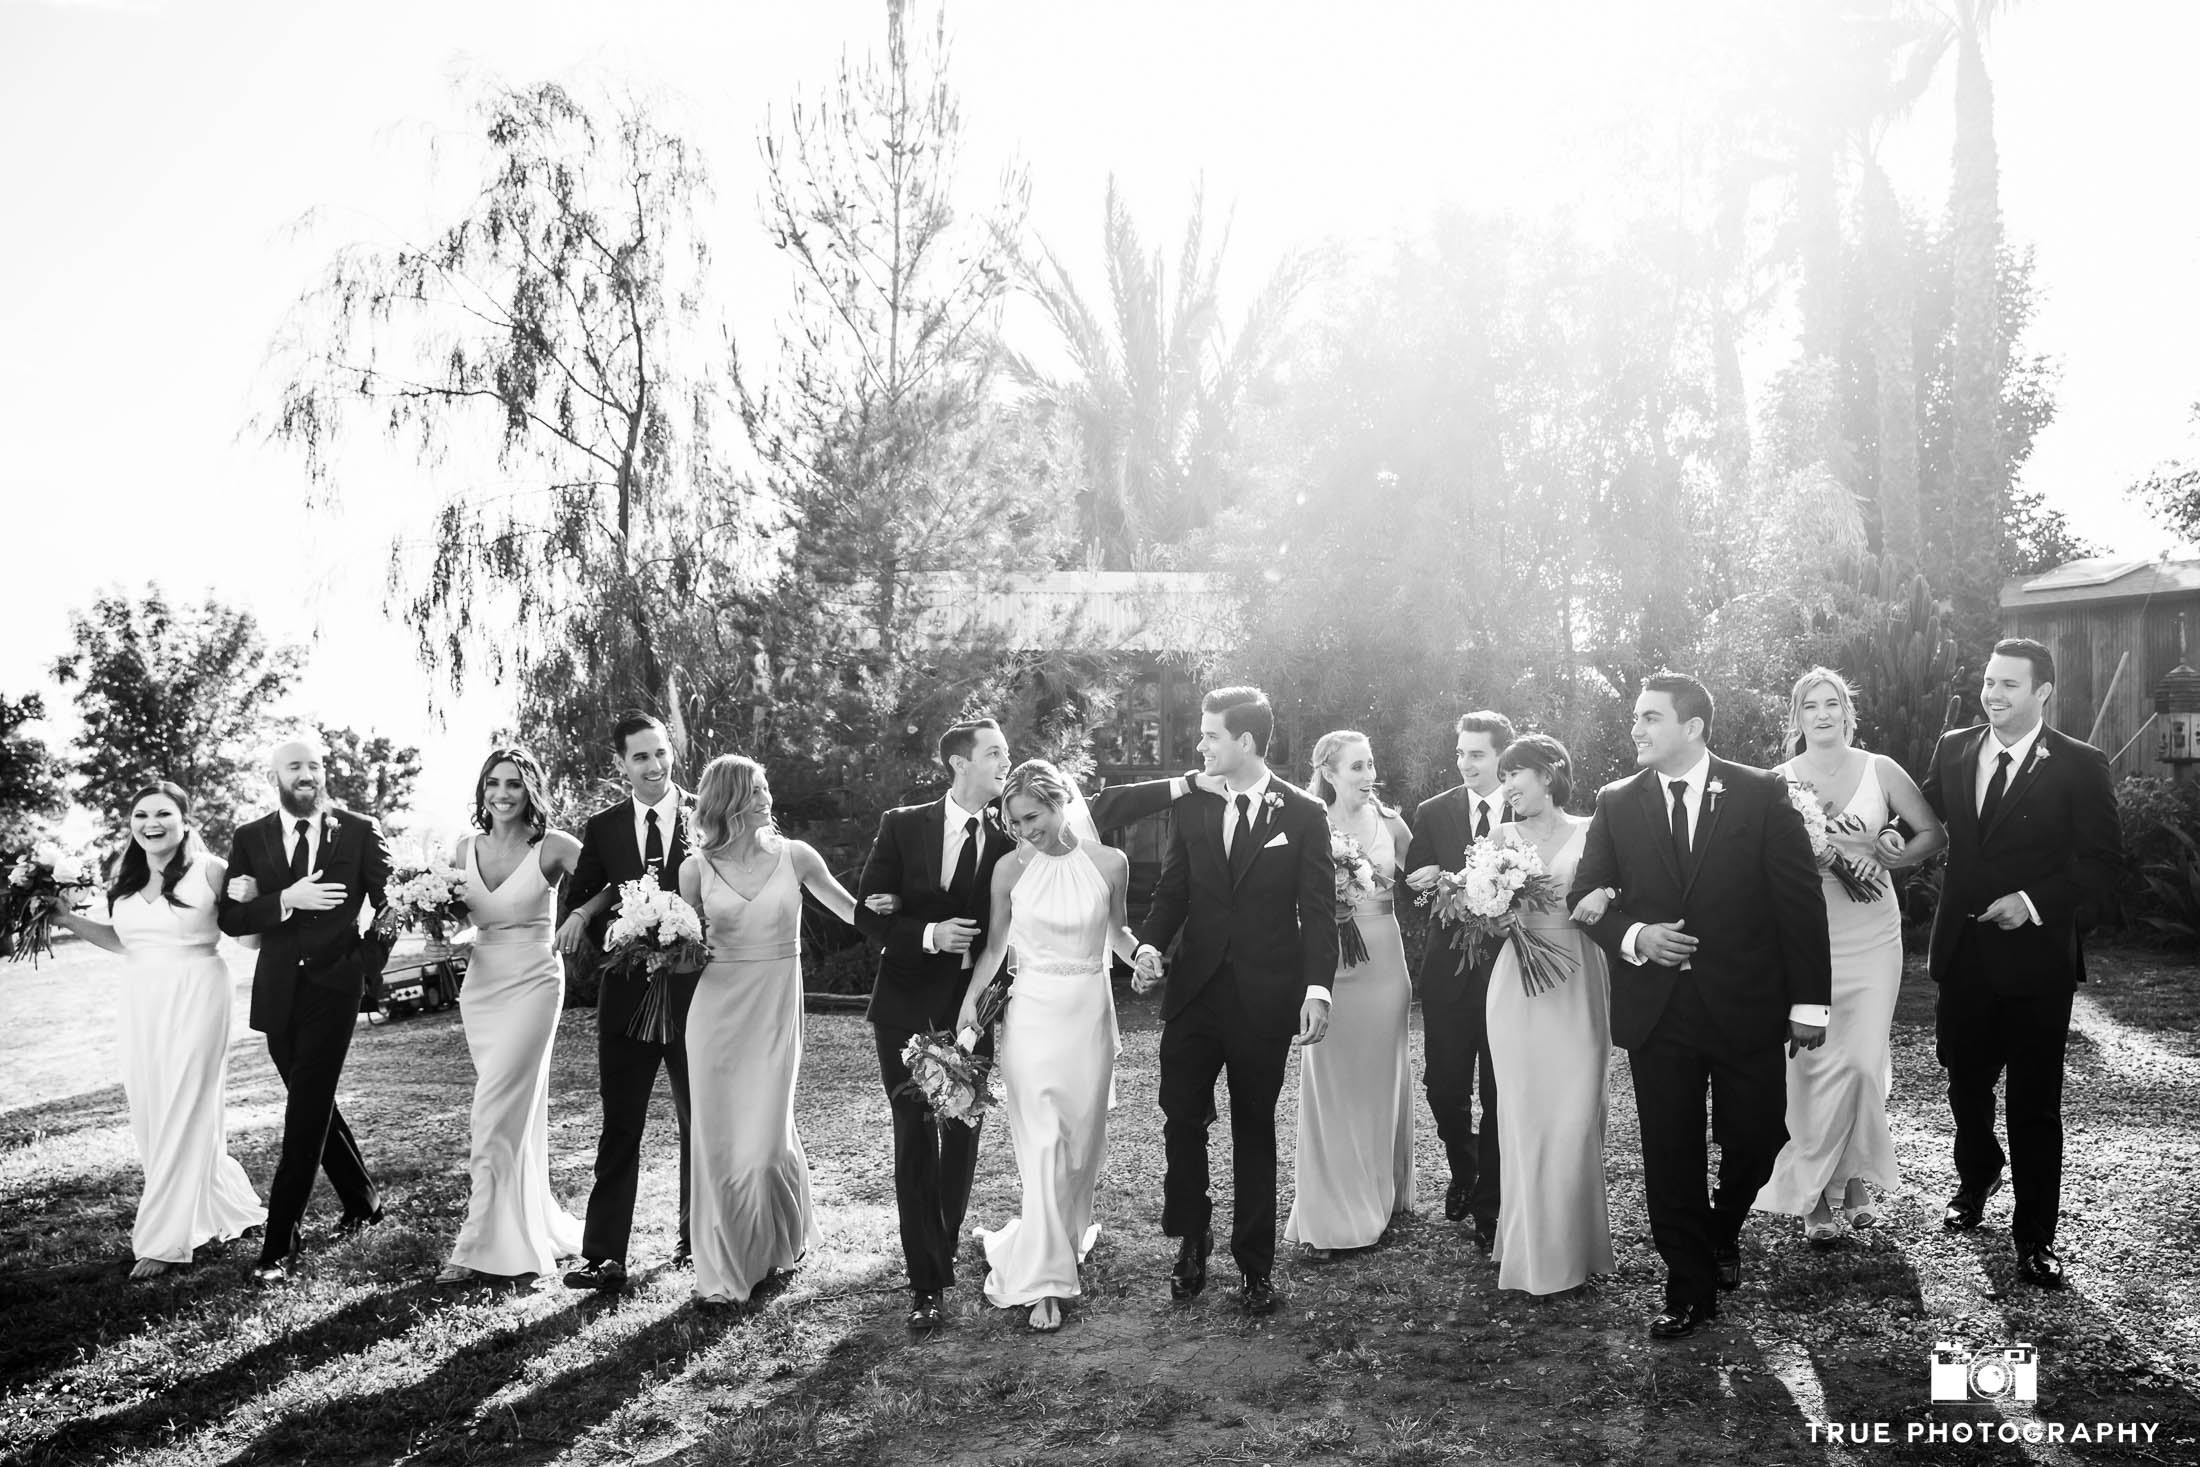 Black and white photo of wedding couple walk with bridal party at rustic ranch